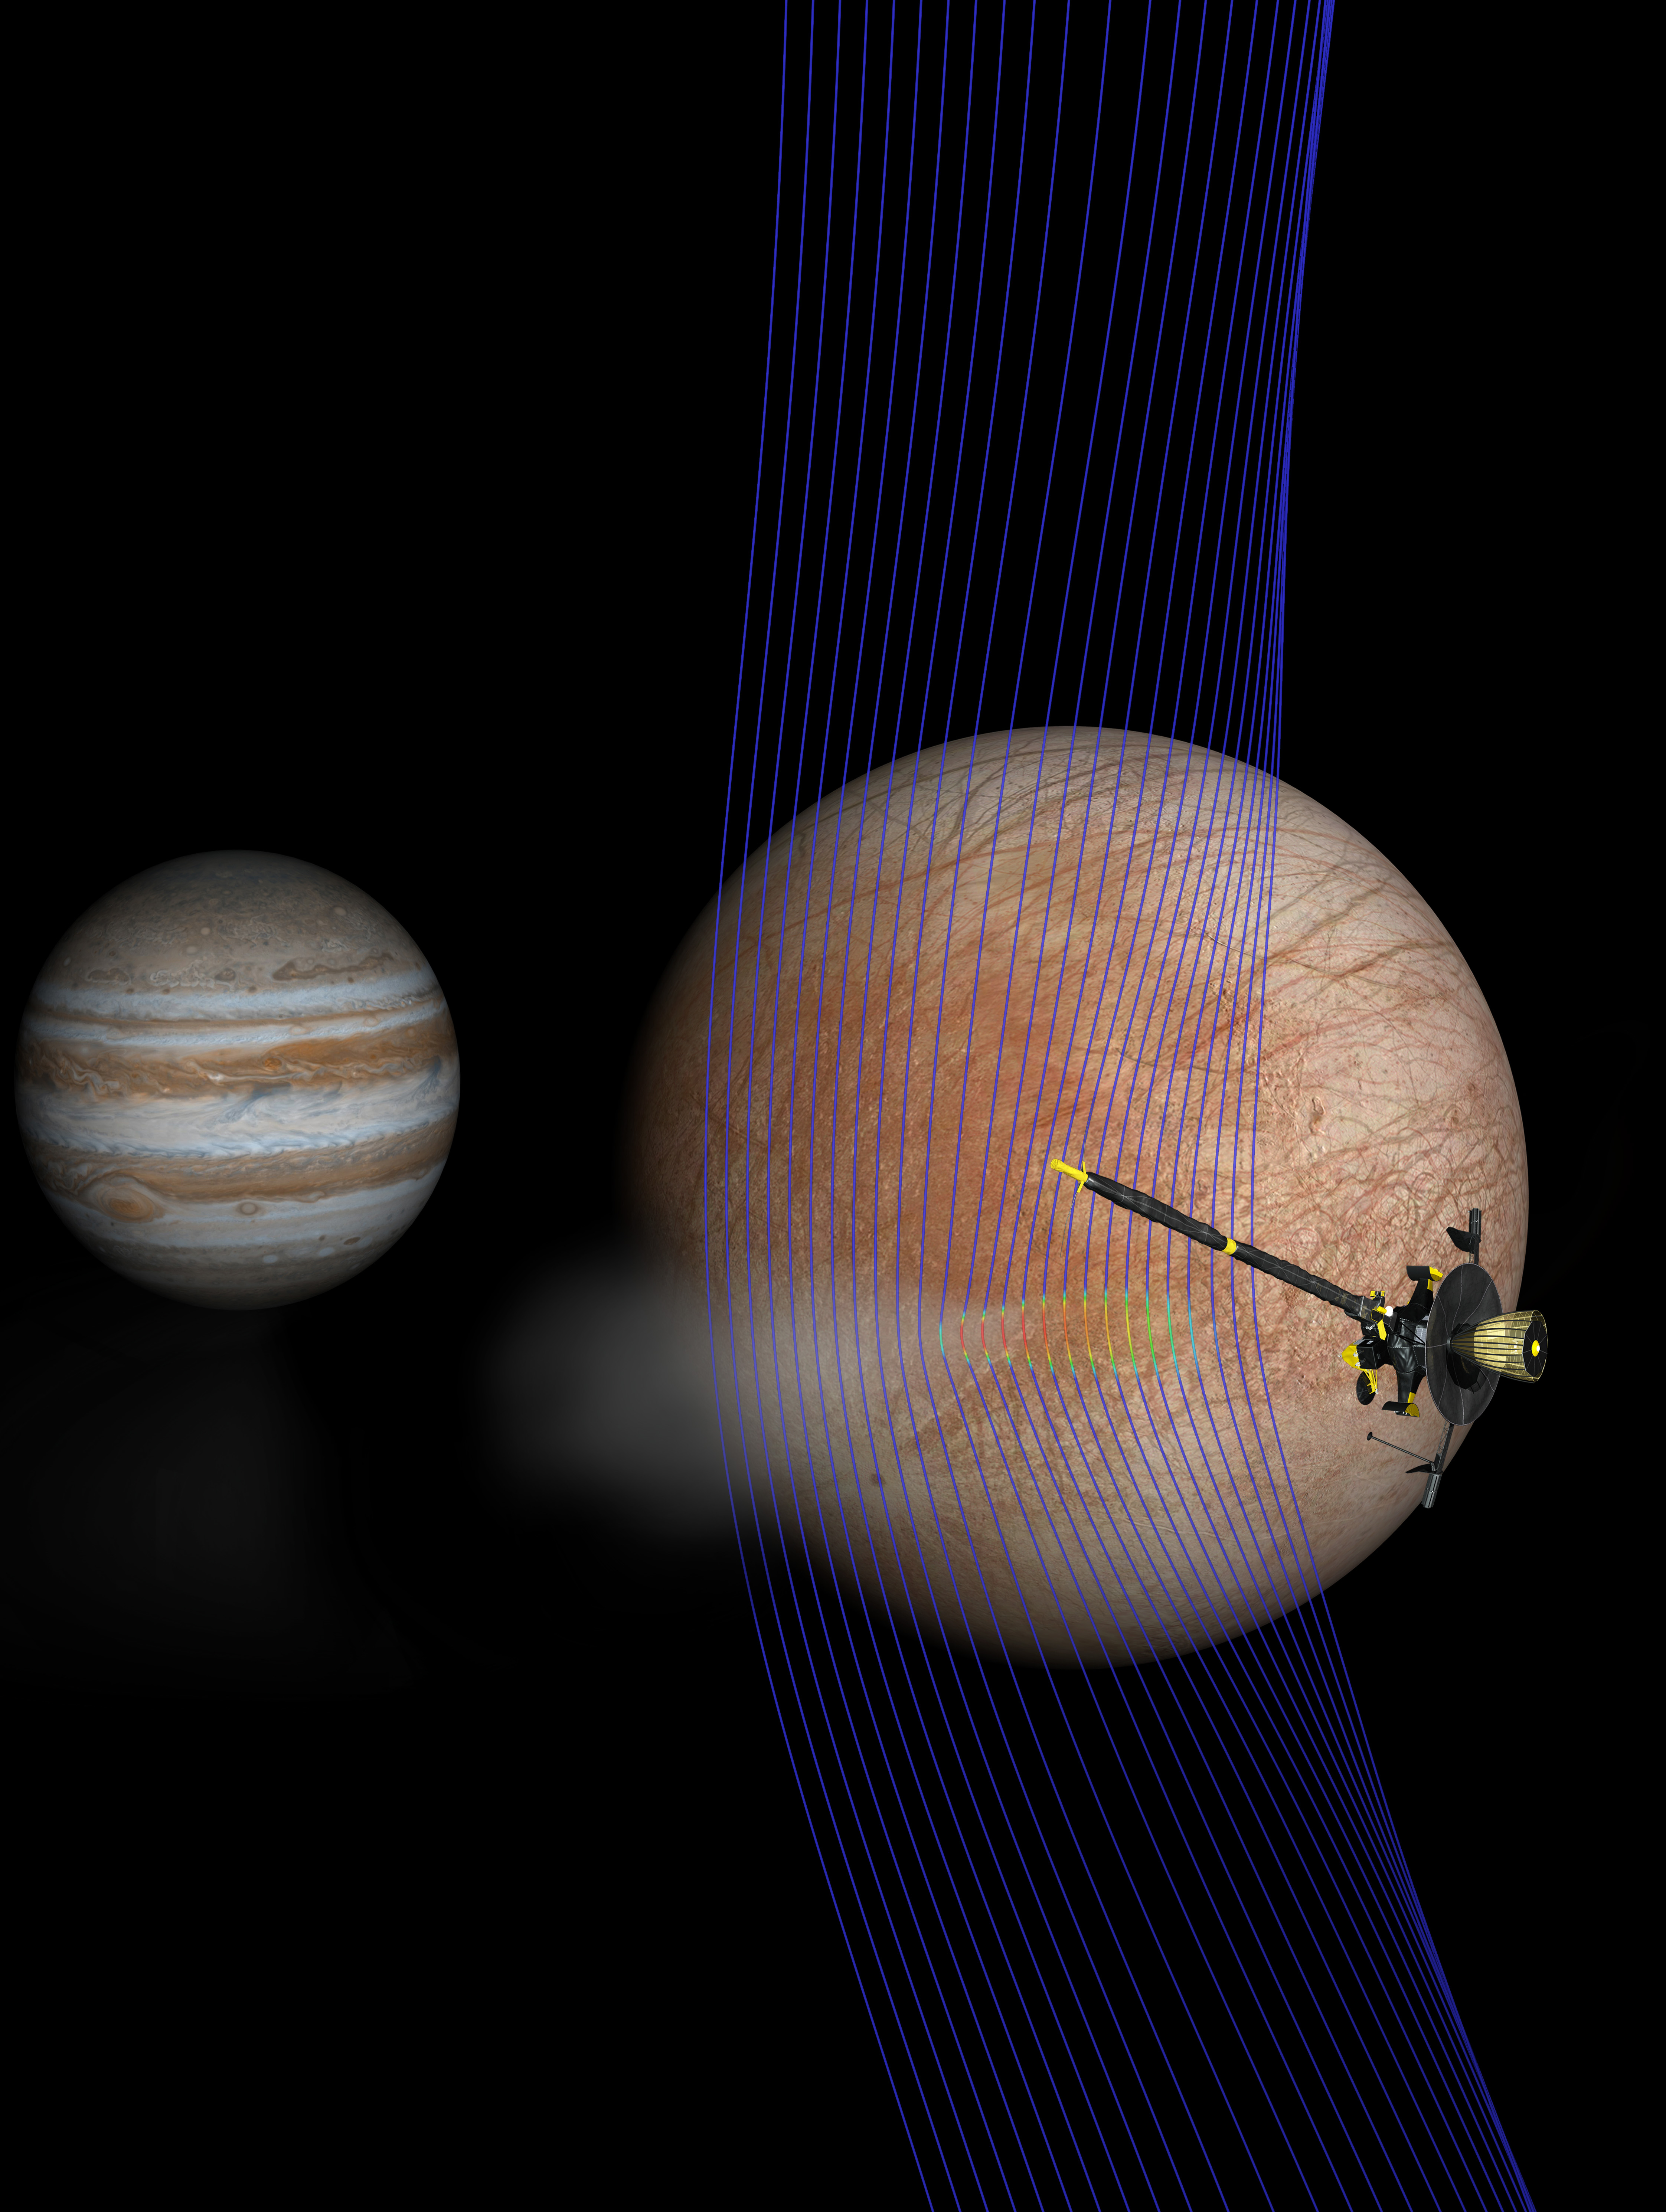 Artist's illustration of Jupiter and Europa (in the foreground) with the Galileo .